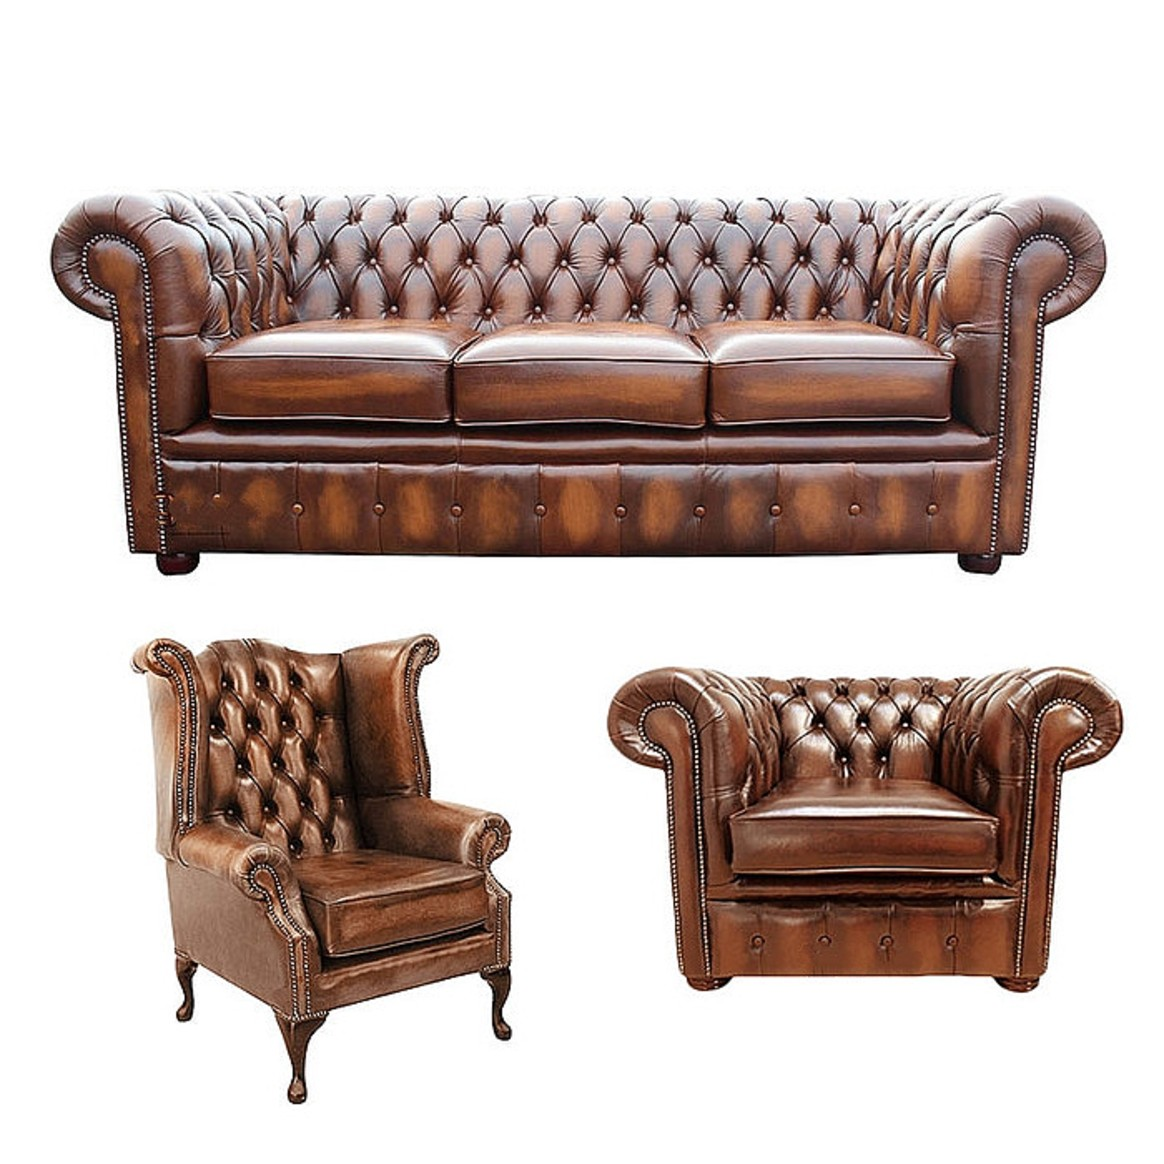 3 Seater Sofa + Club Chair + Queen Anne Wing Chair Leather ...